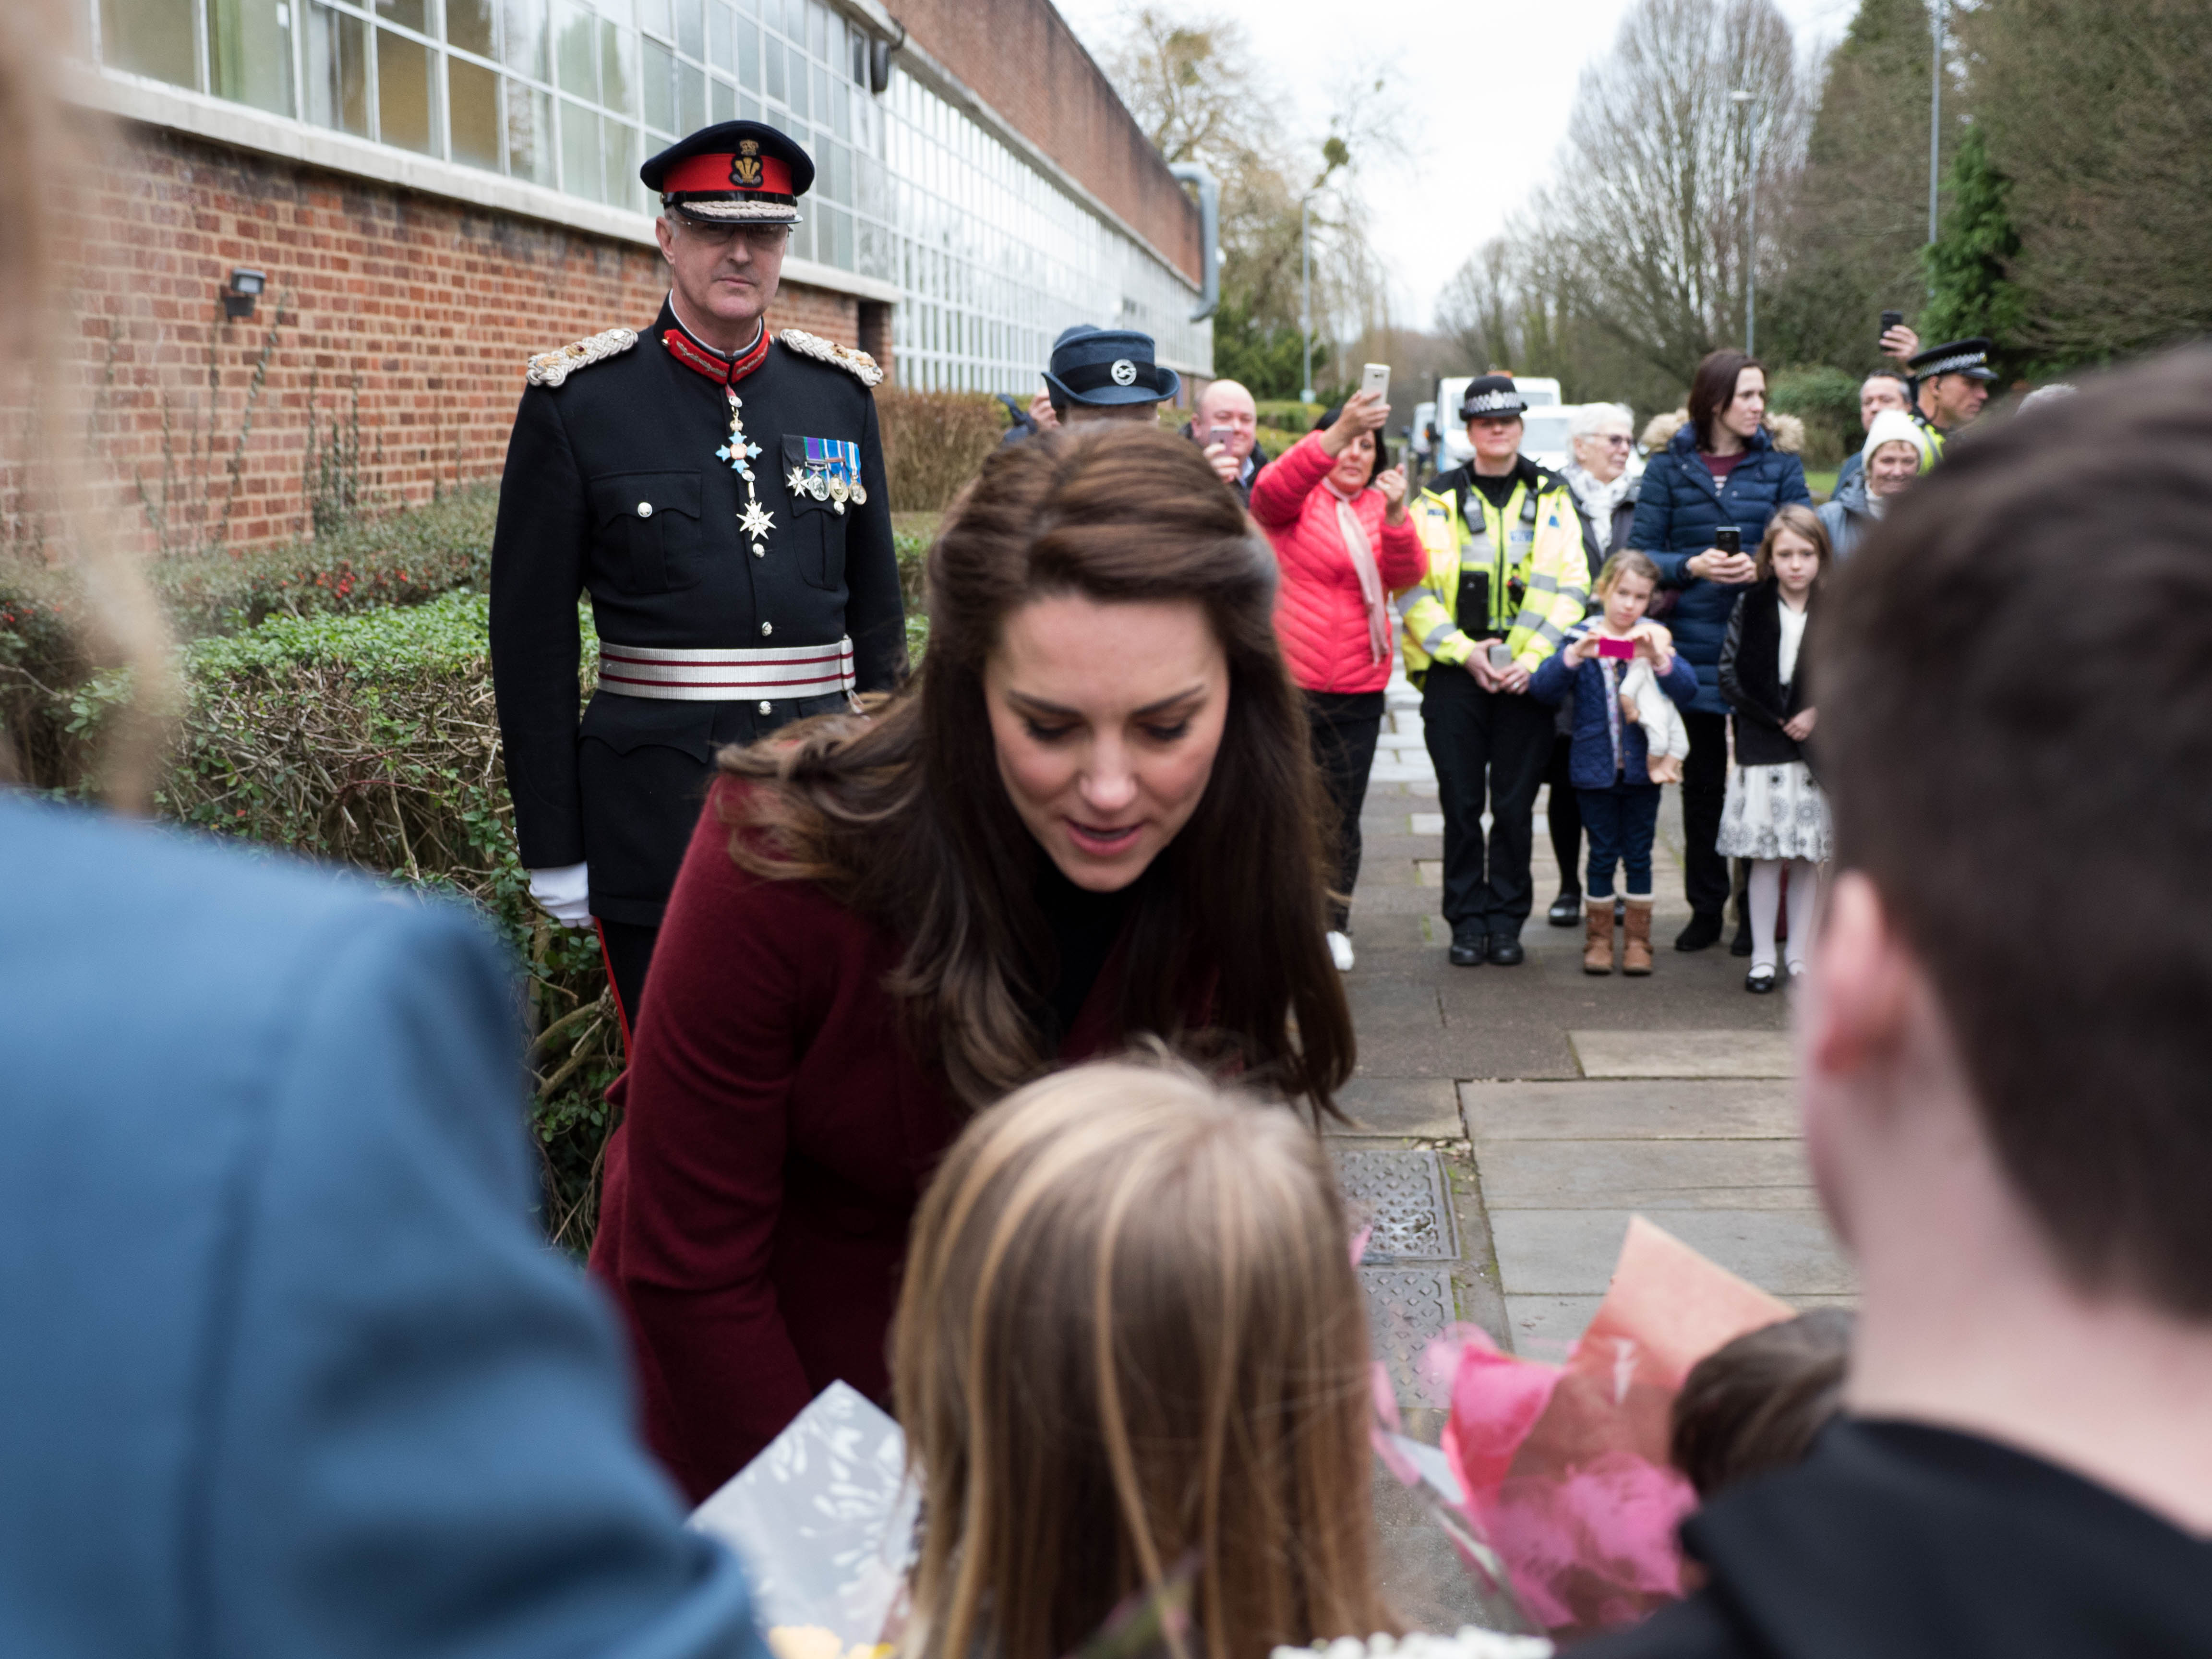 Katemiddleton (16 of 31)